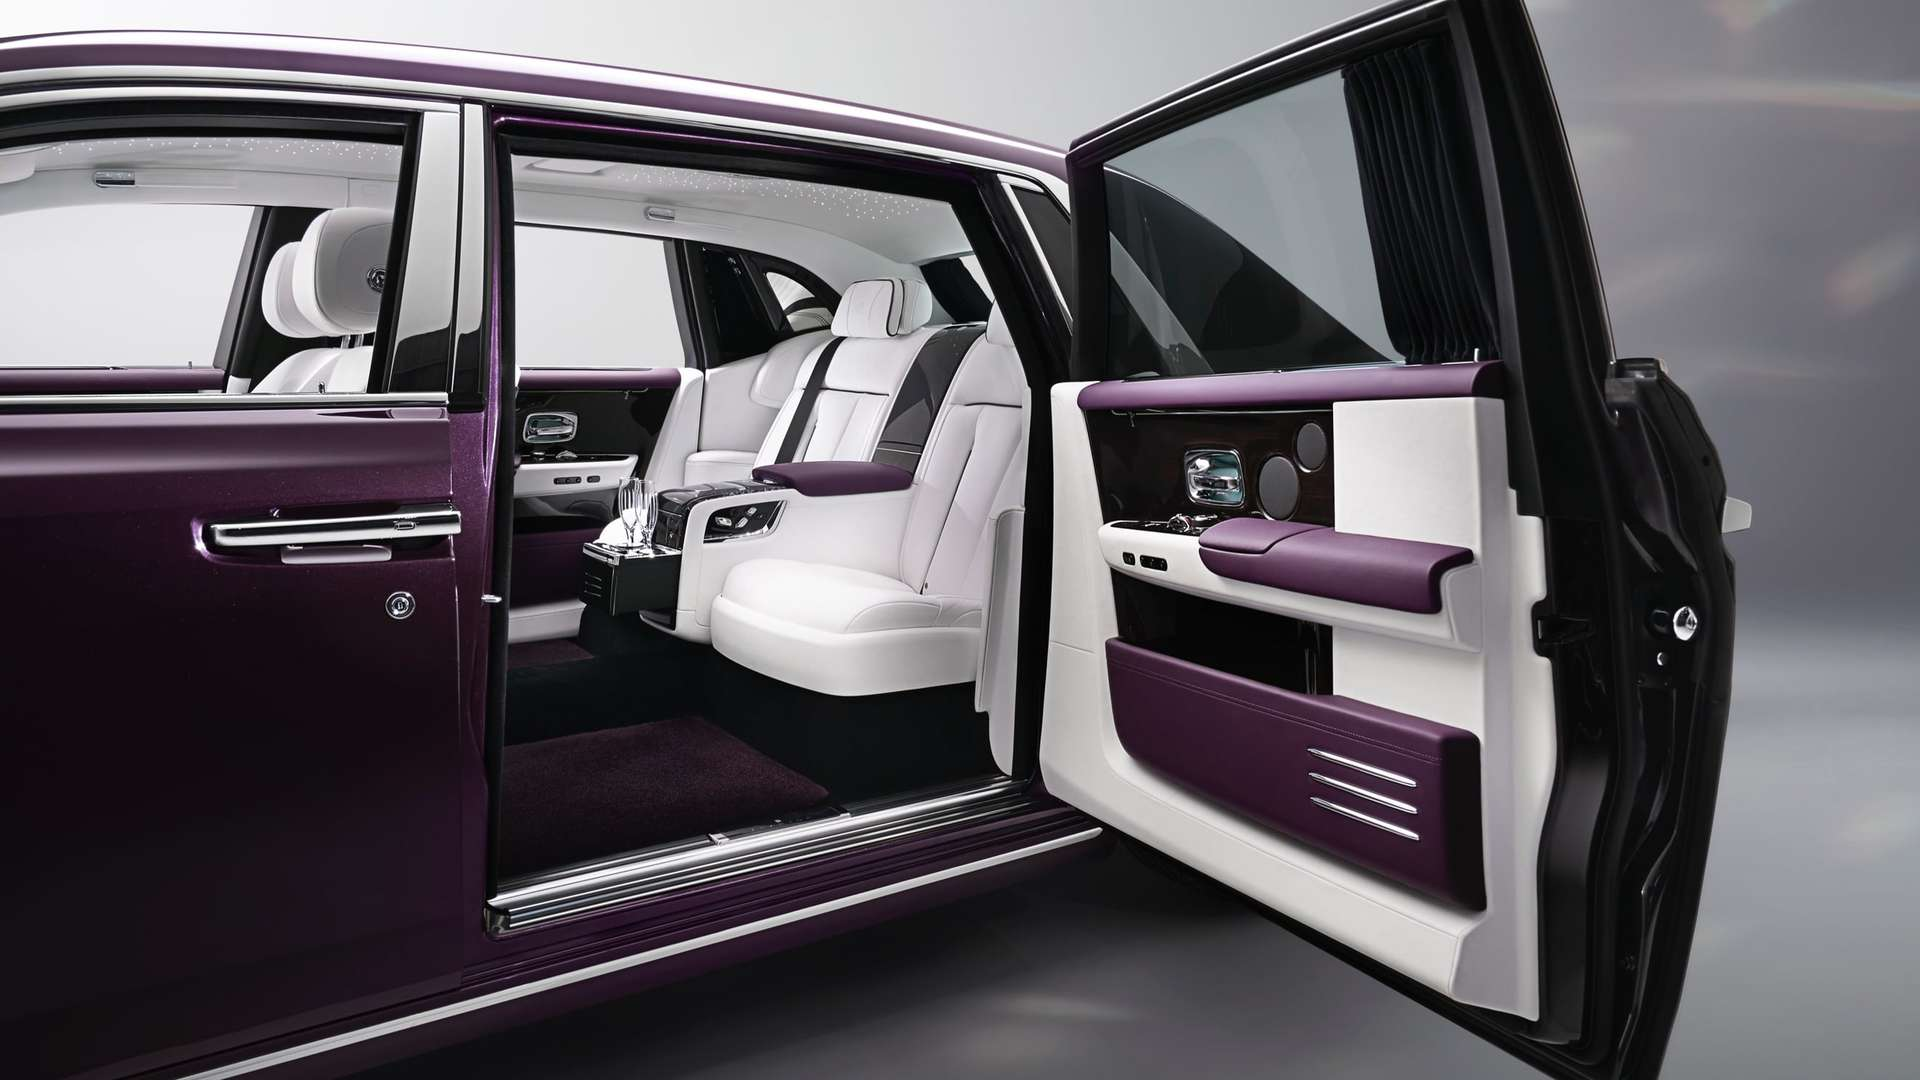 Coach doors of the Phantom extended wheelbase